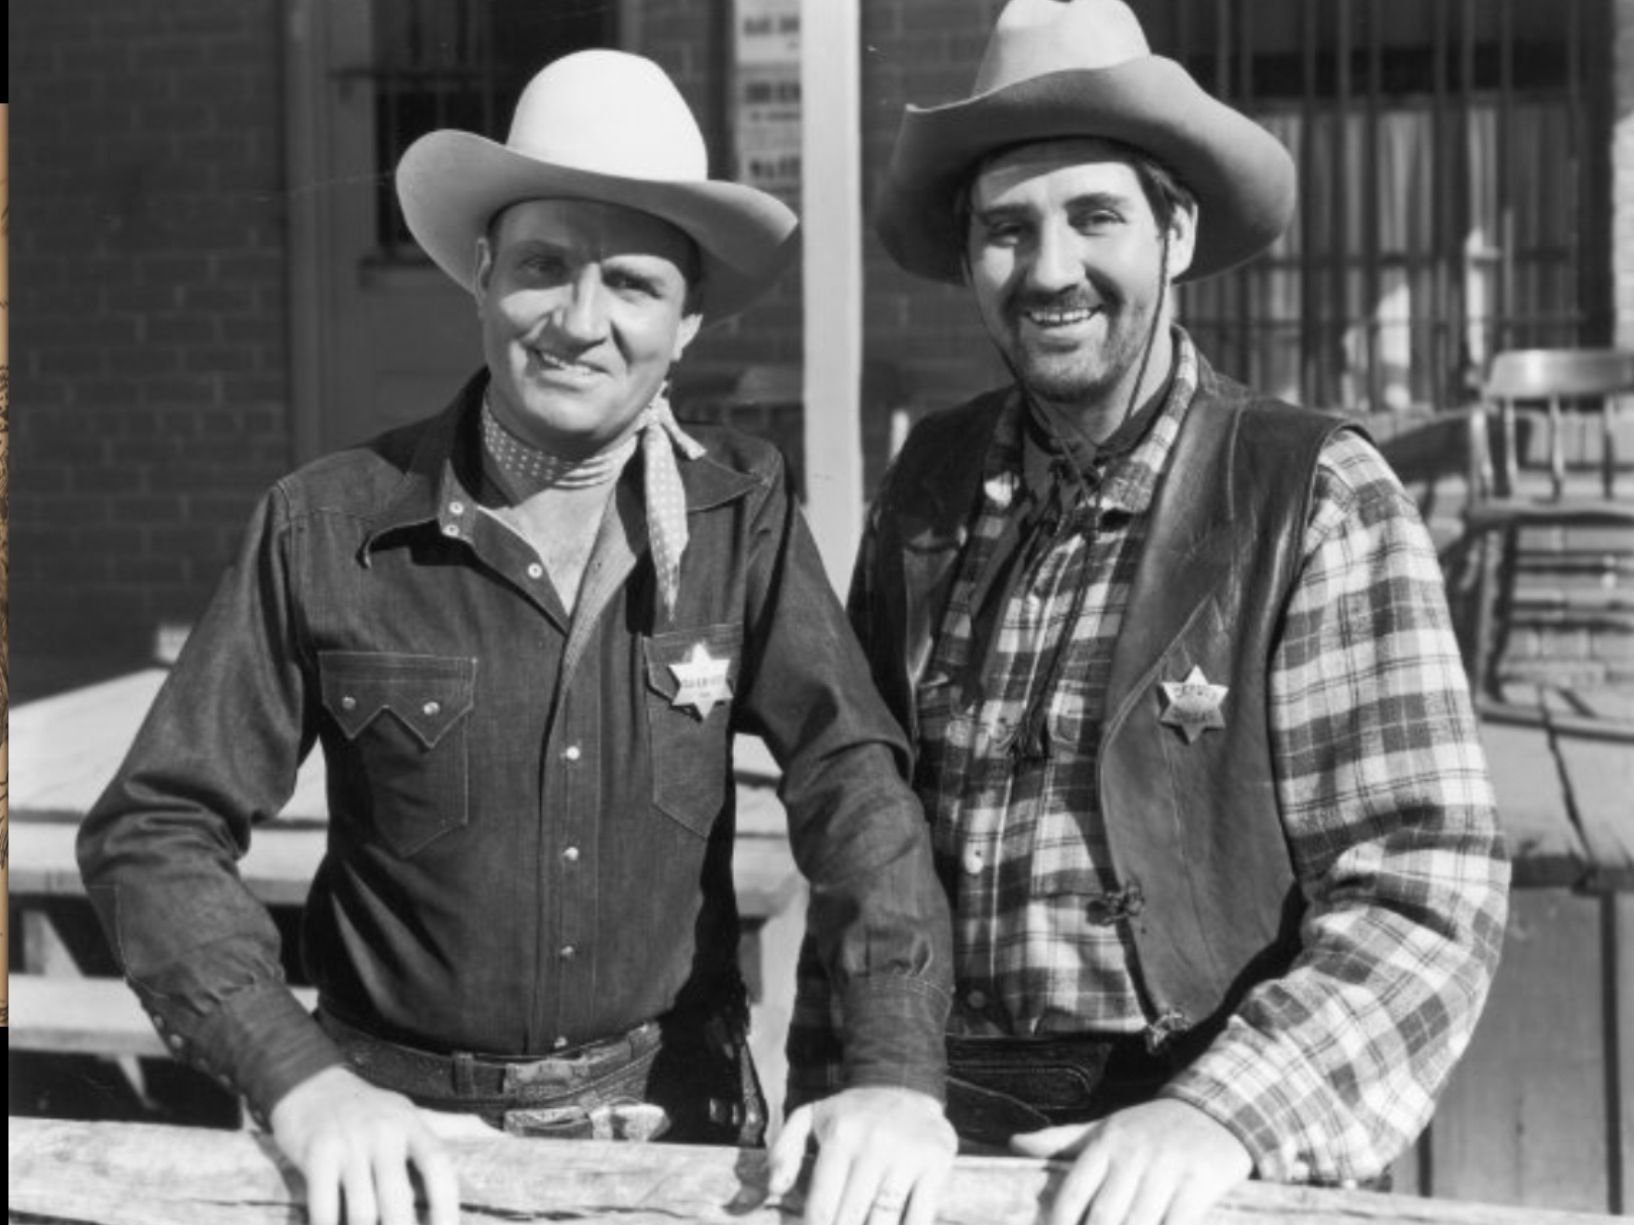 """Gene Autry was my childhood idol. He is pictured with his sidekick Pat  Butrum. His theme song was """"Back in the Saddle Aga… 